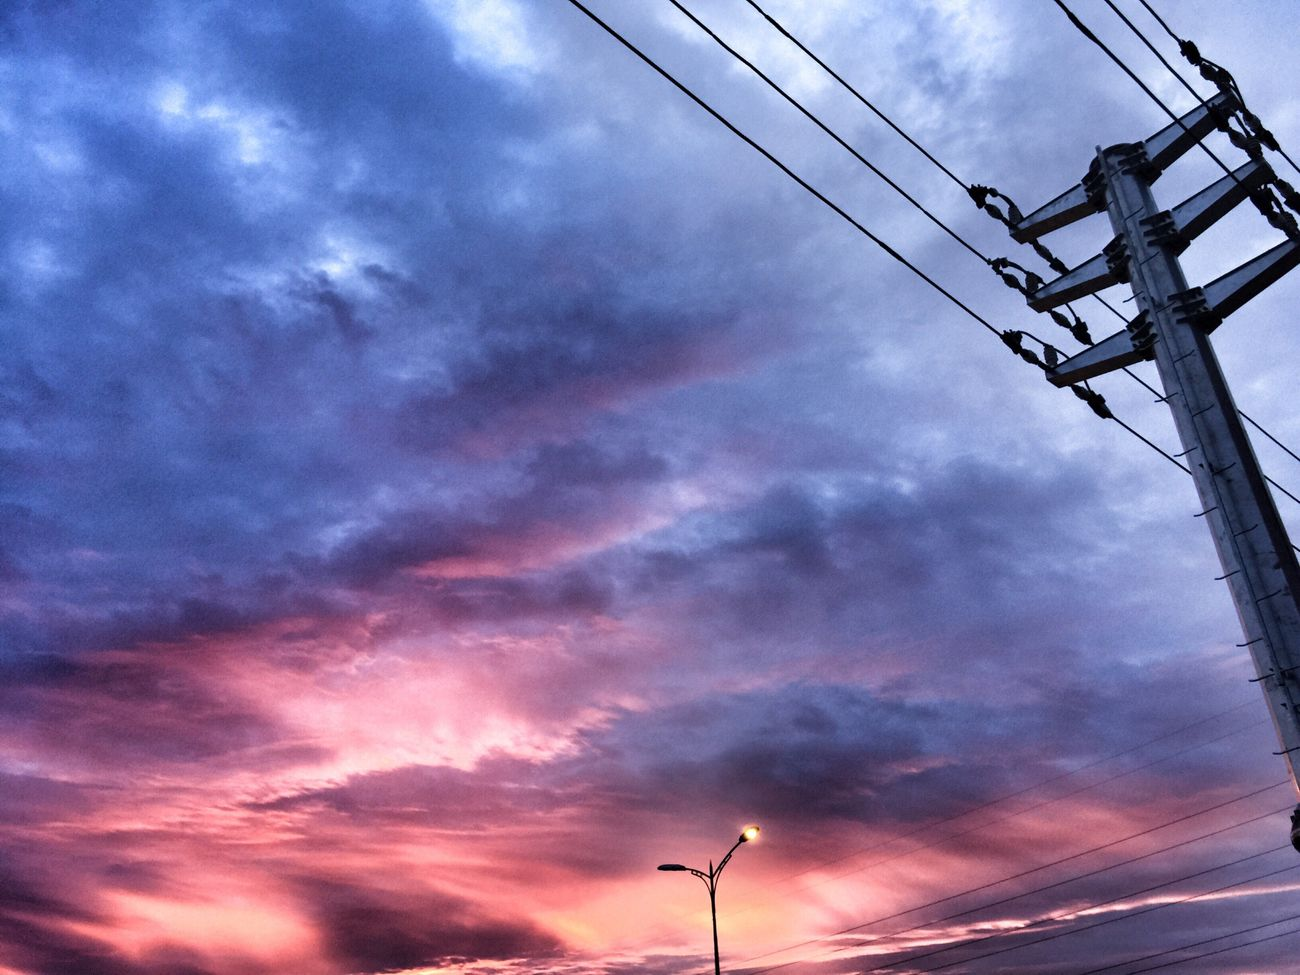 Cloud - Sky Electricity  Sunset Outdoors Nature Sky First Eyeem Photo Check This Out My Year My View Hanging Out Colorful